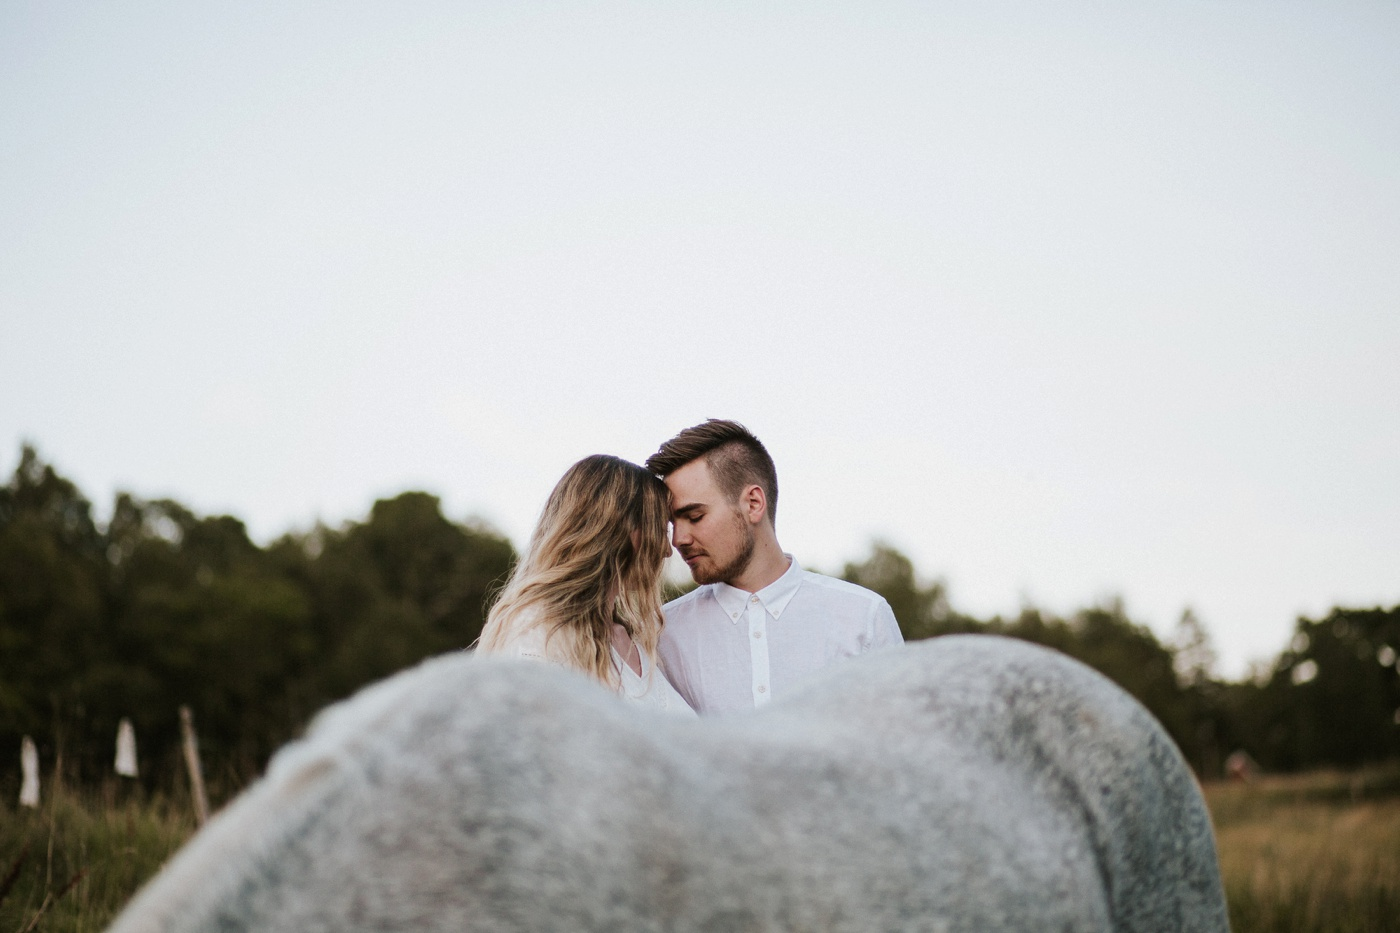 natalie-wictor_swedish-relaxed-candid-quirky-fun-engagement-session_13